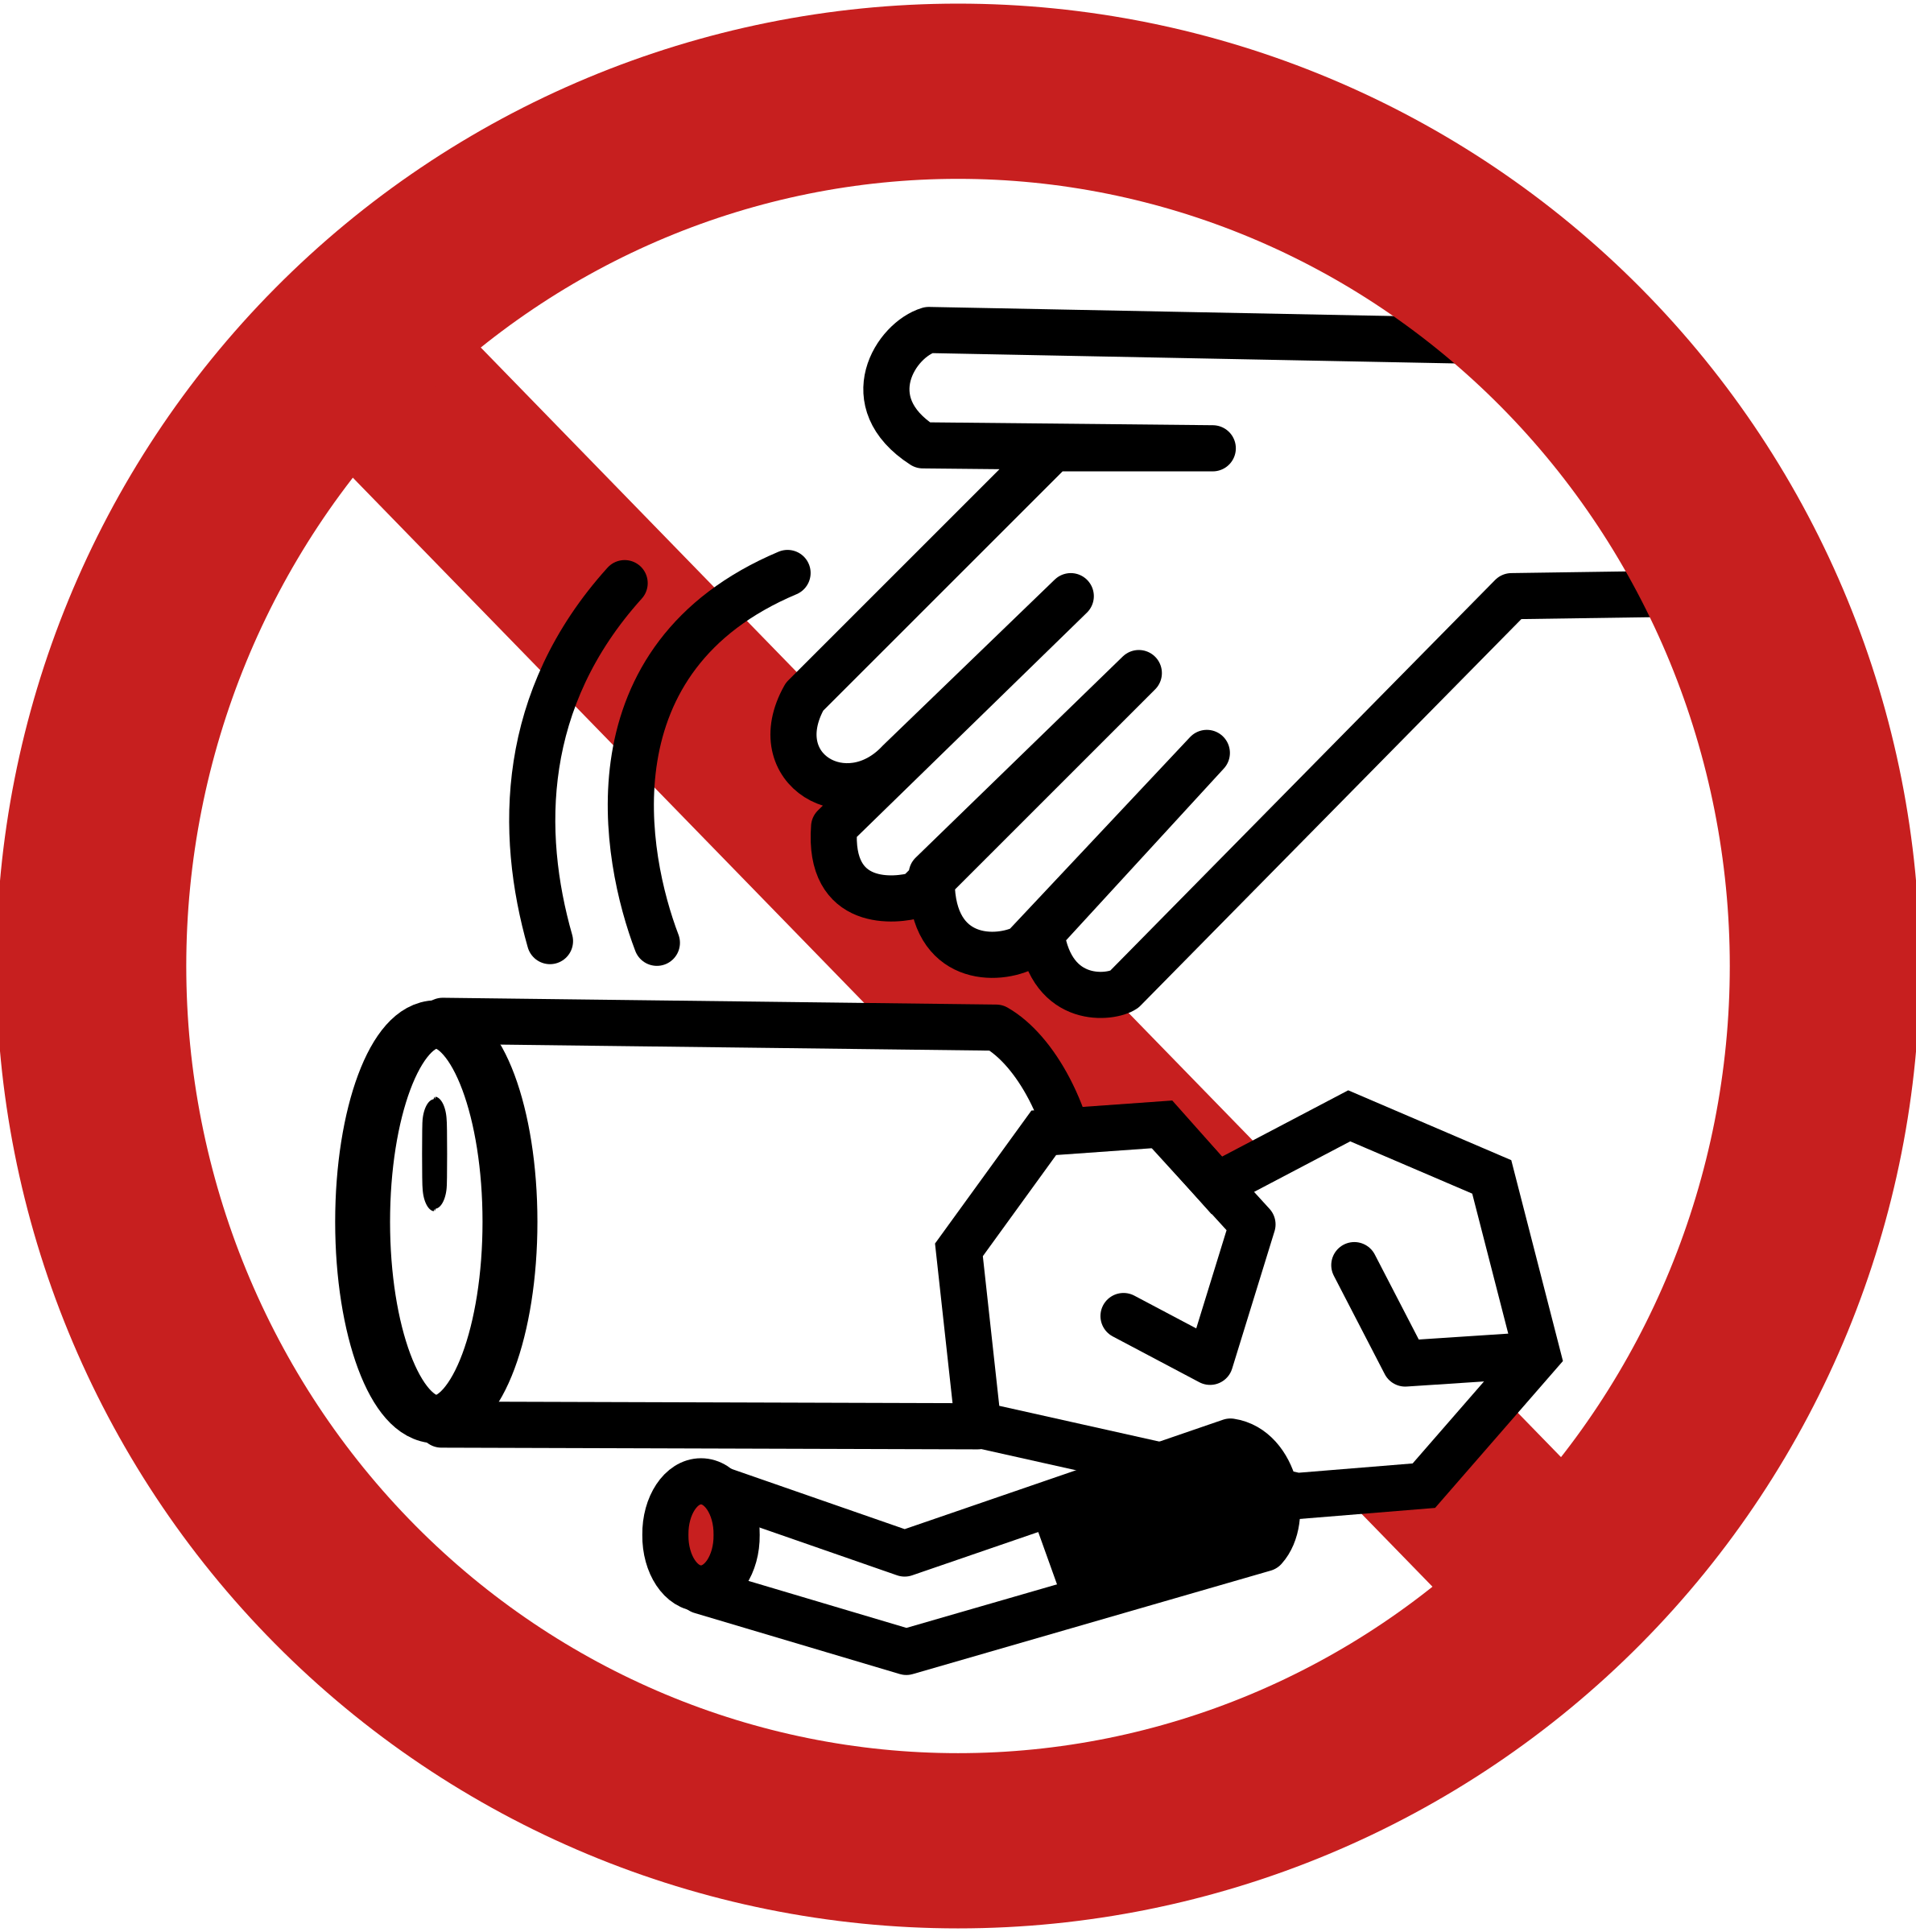 No Littering Sign Clipart.